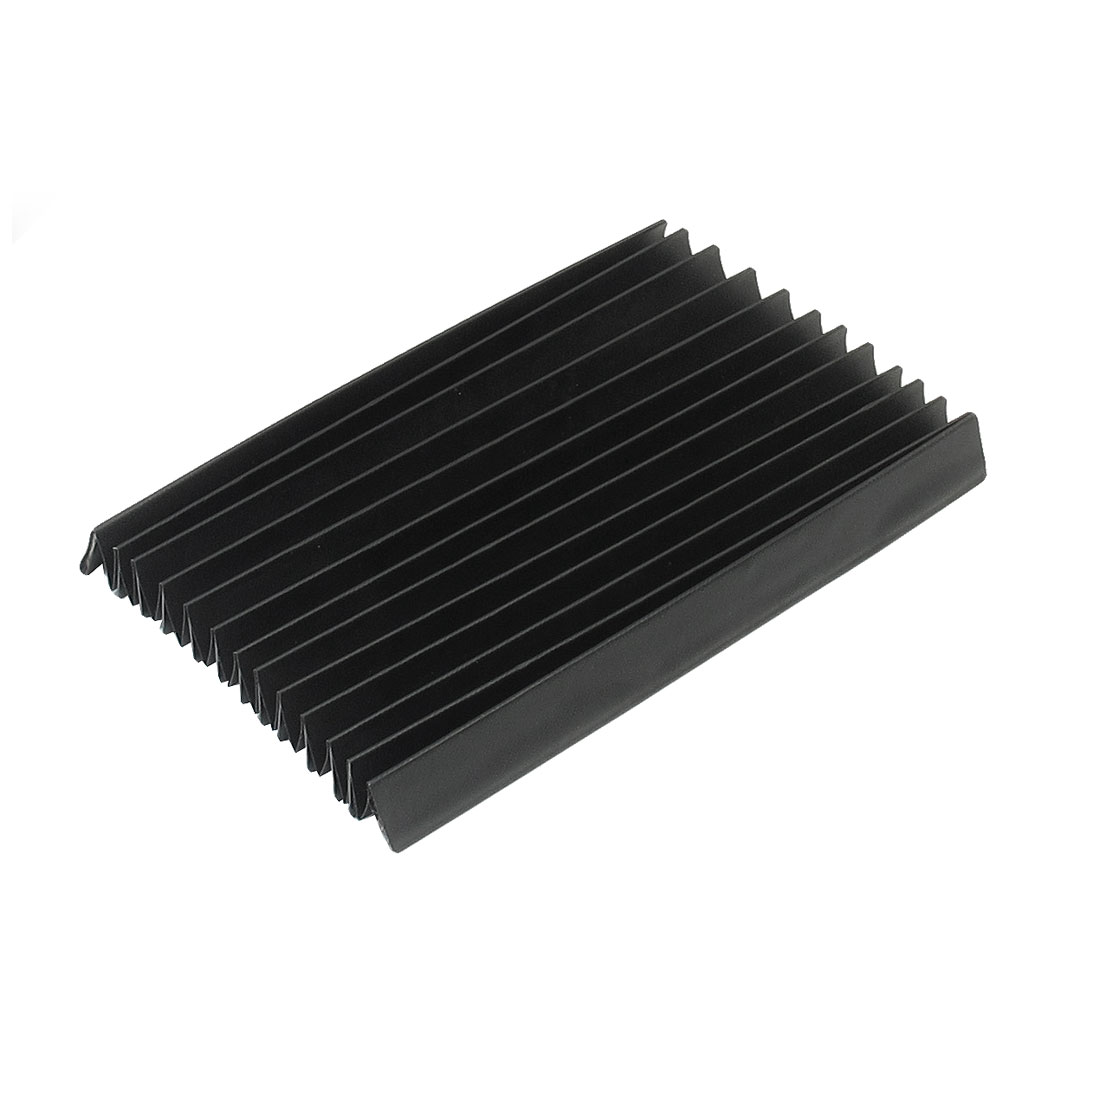 Black Metal Plastic Frame Rubber Dust Cover for CNC Machine